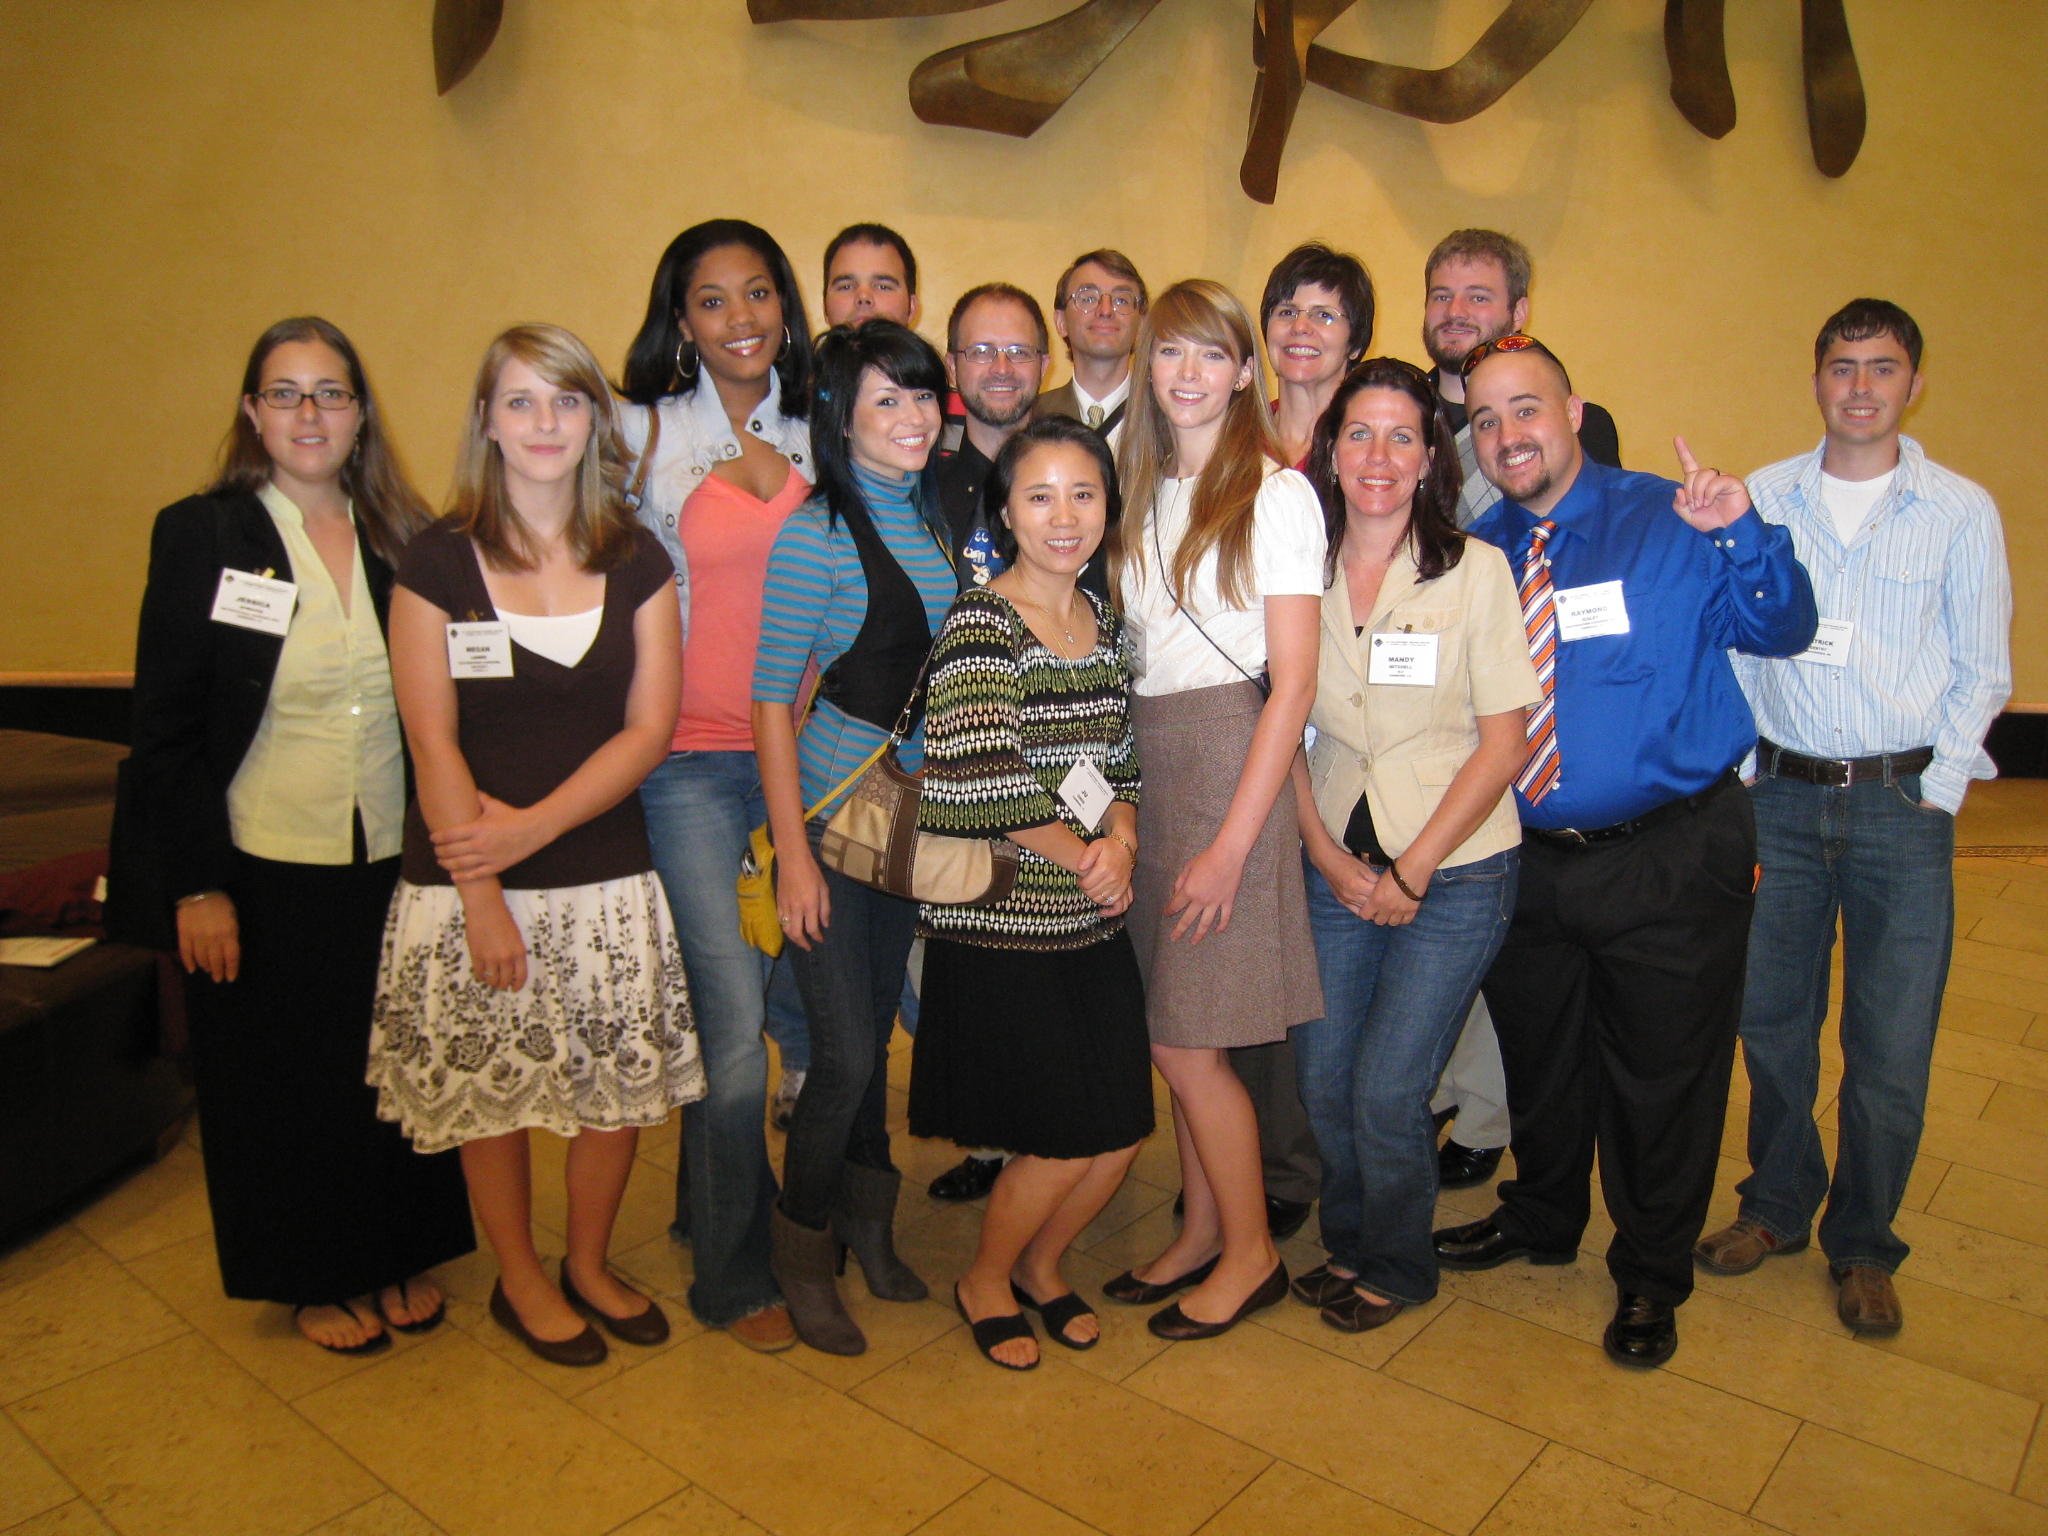 M/ 36th meeting of the american society for photobiology